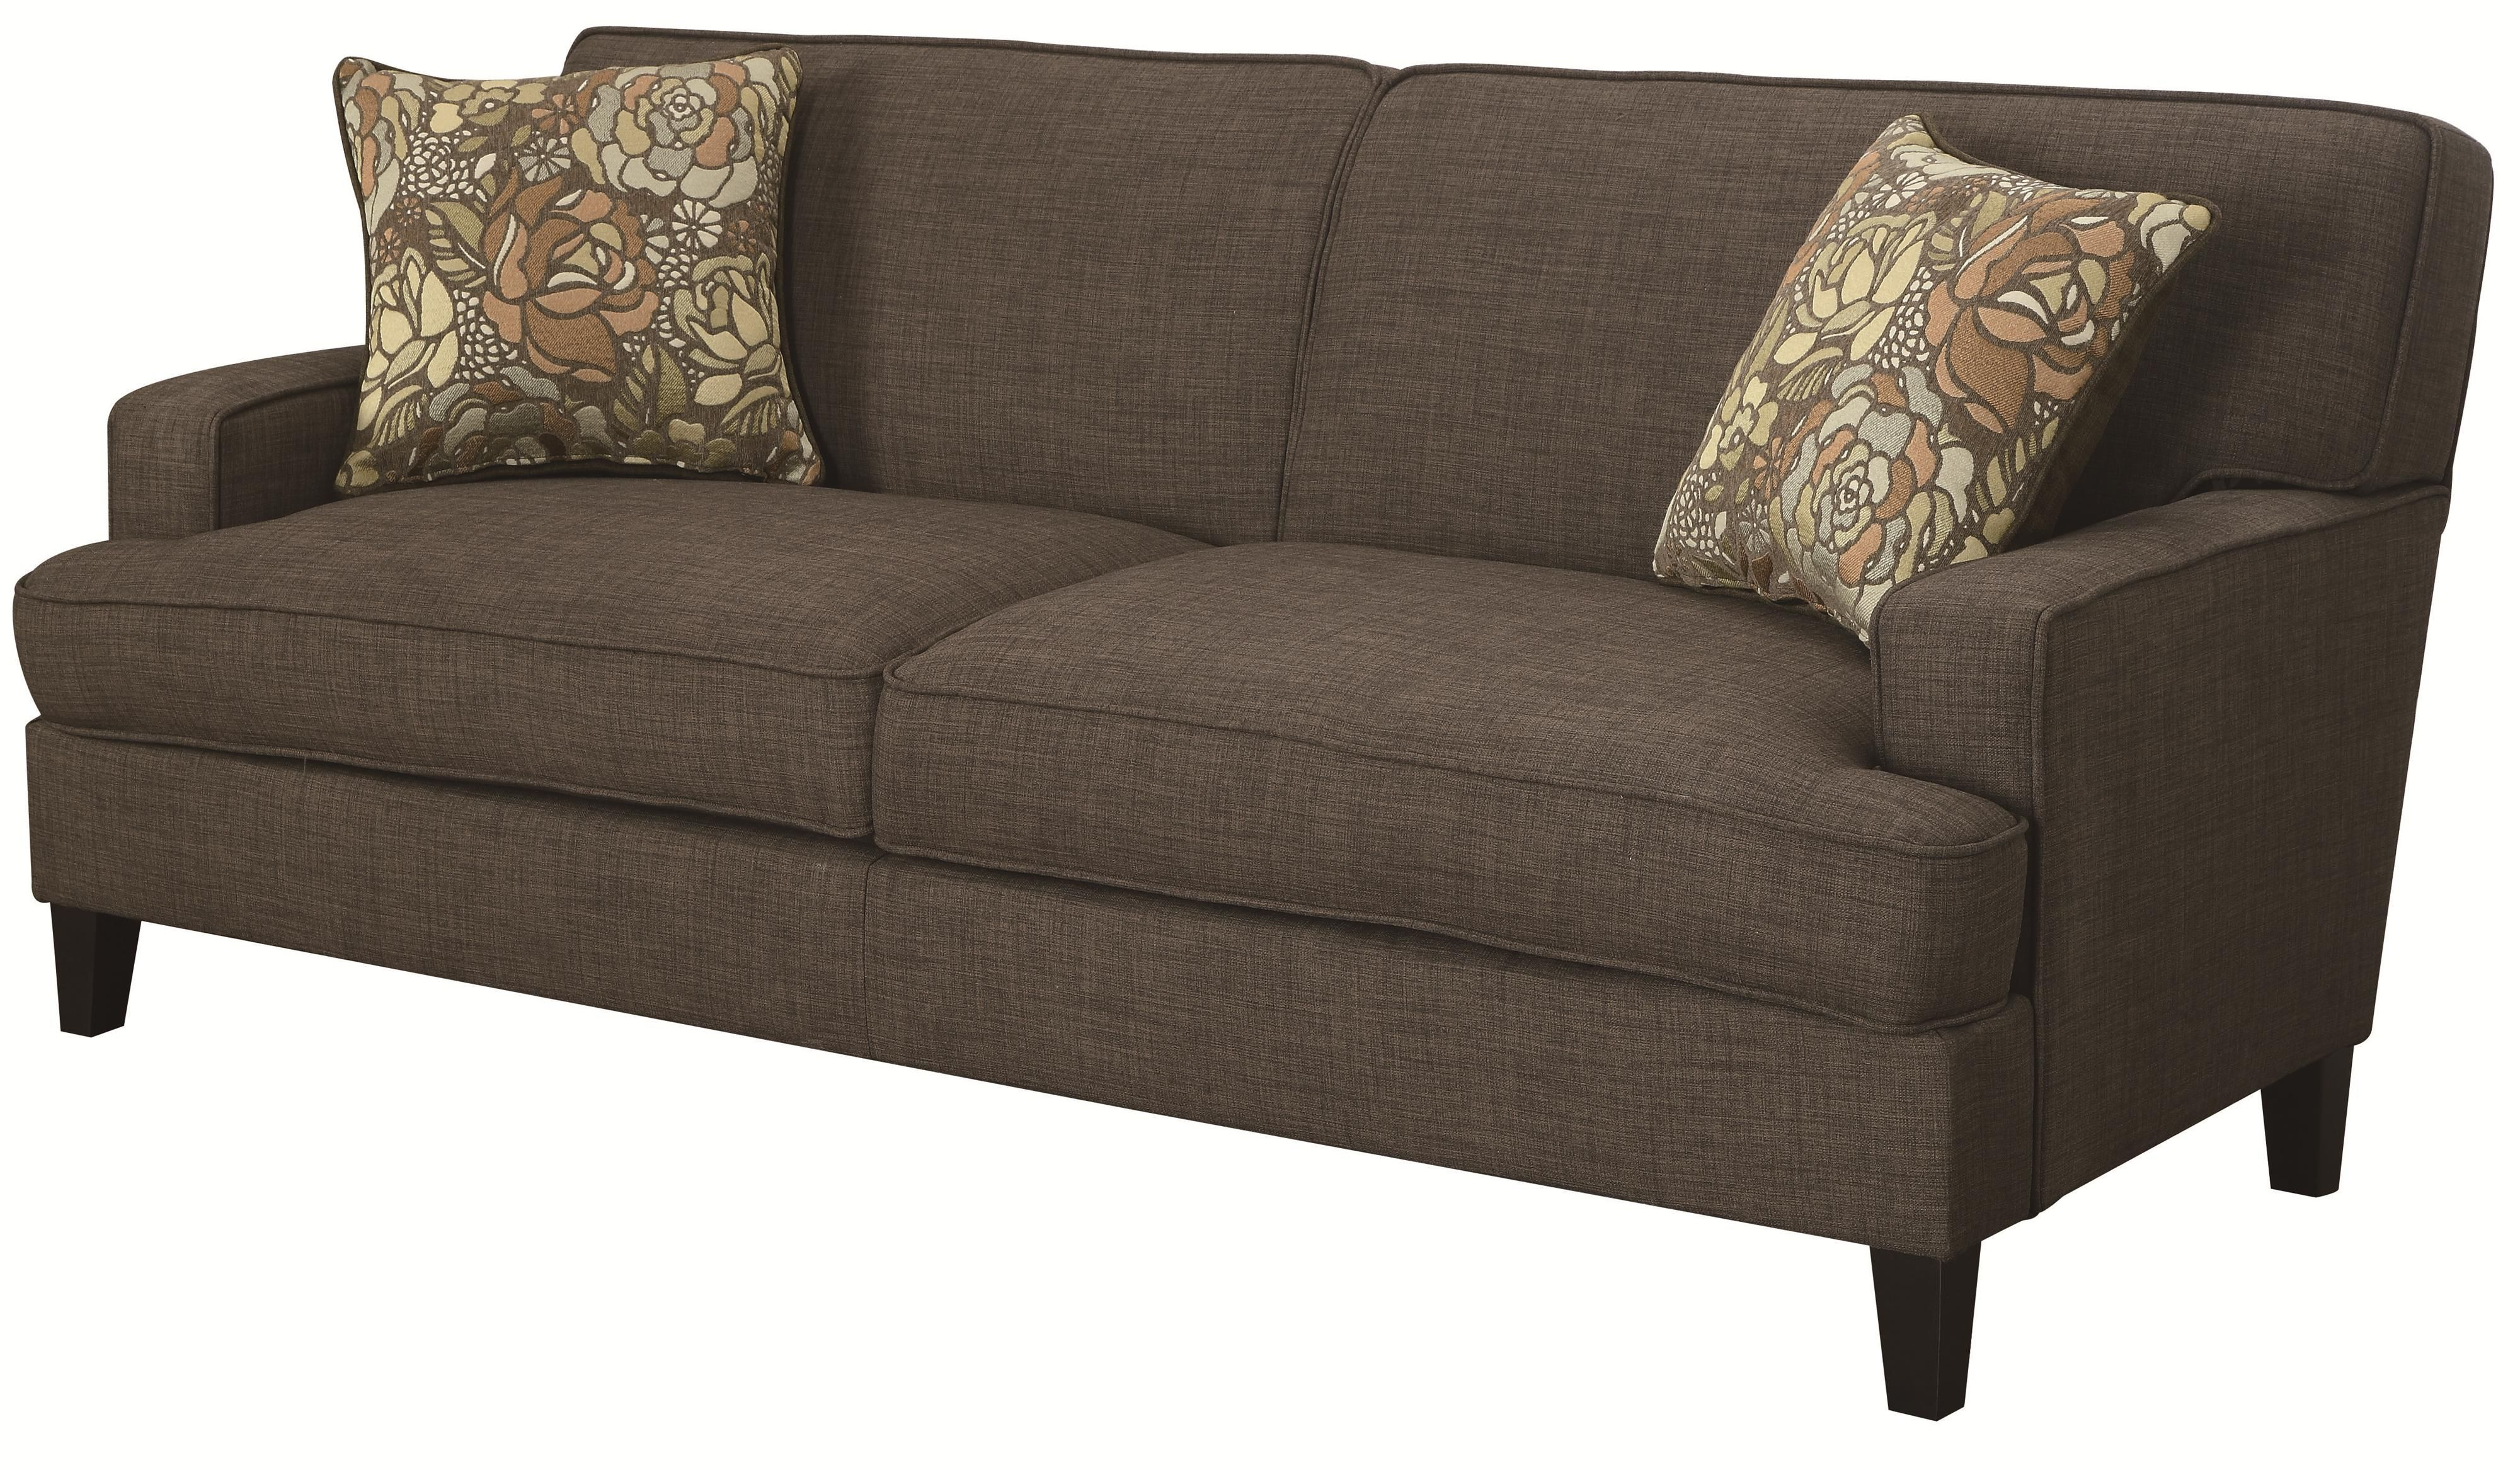 Coaster Finley Transitional Styled Sofa With Track Arms   Rooms Furniture    Sofa Houston, Sugar